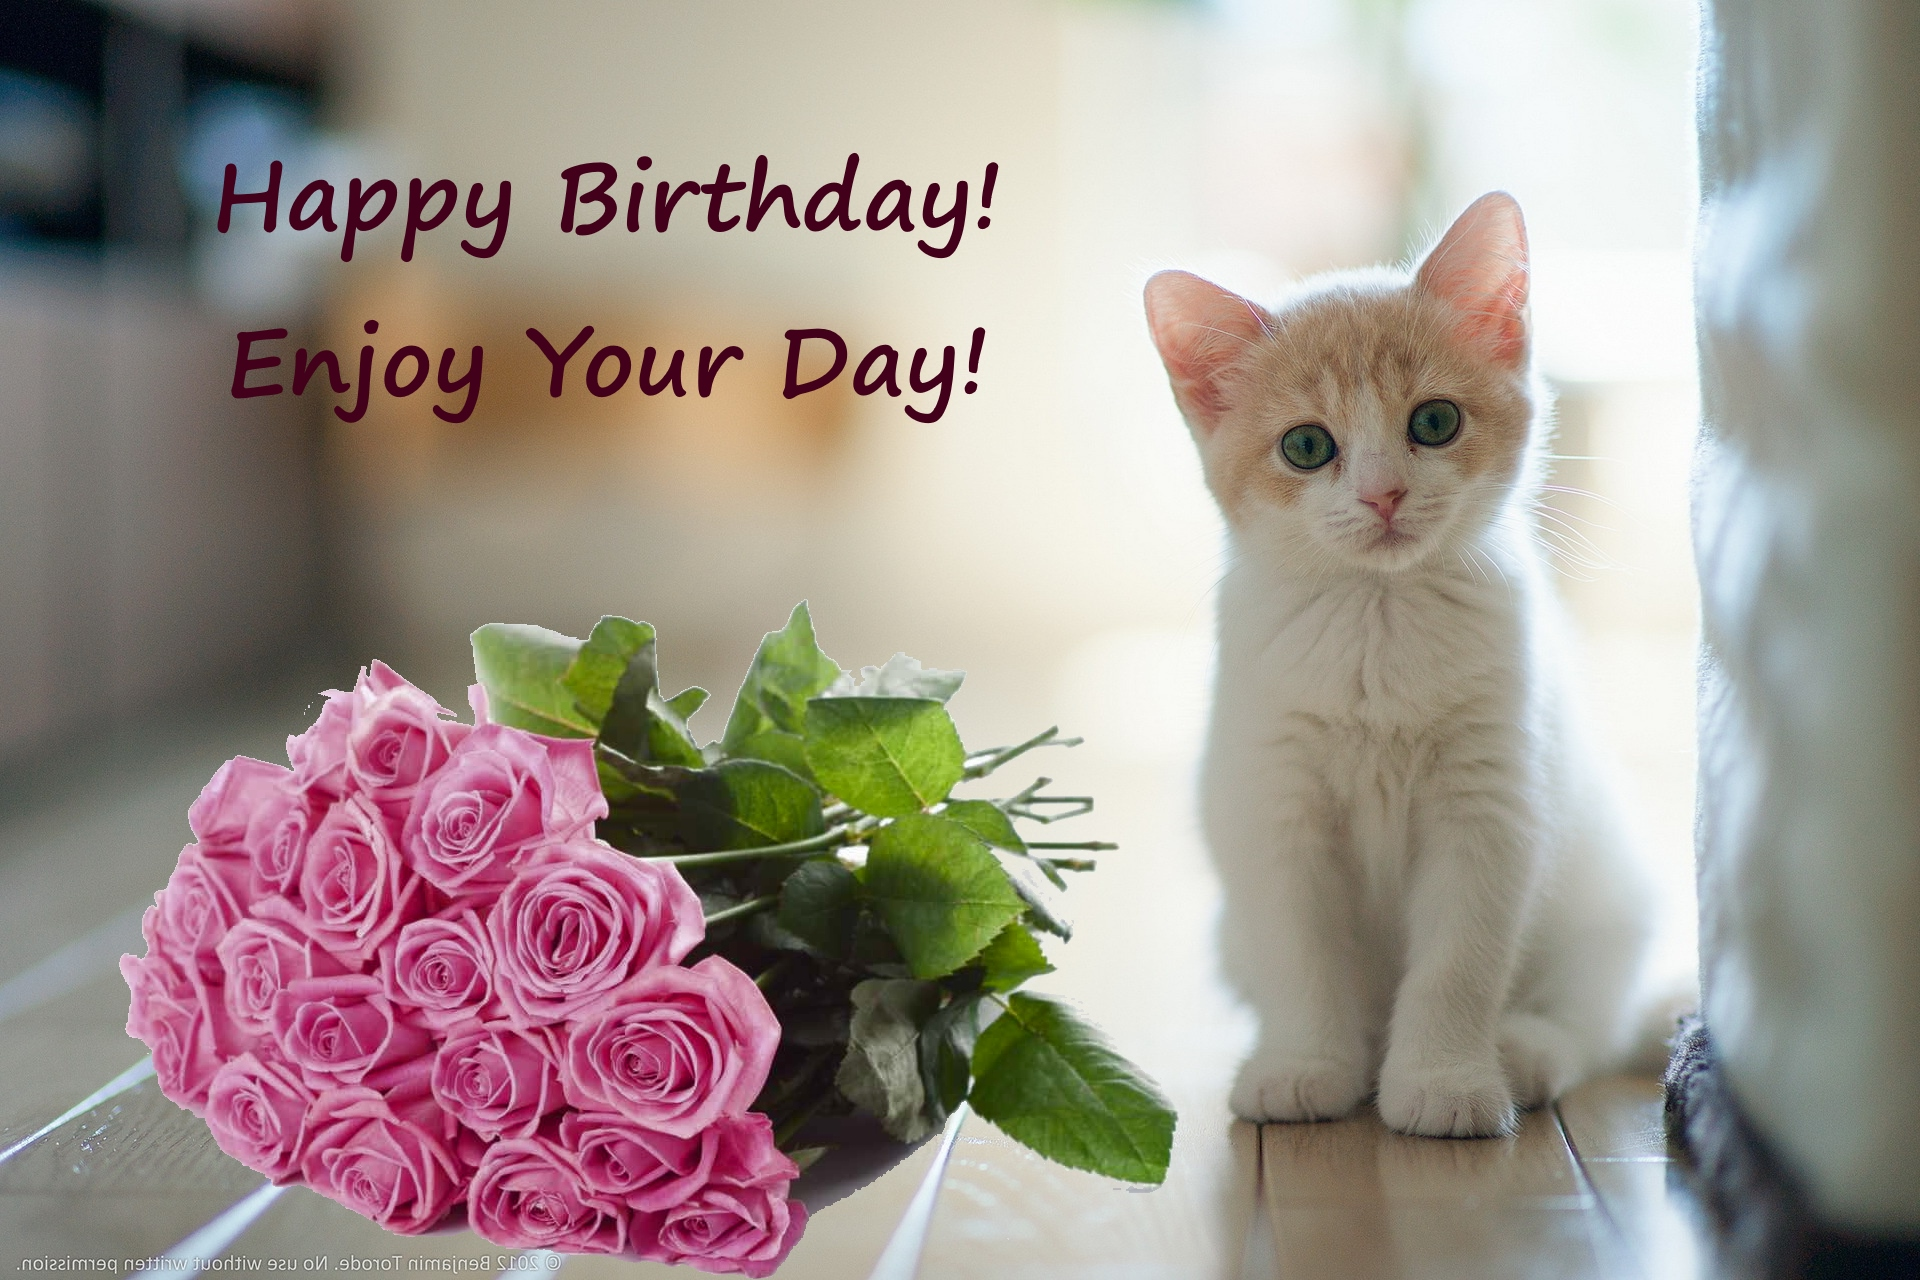 Happy birthday with kitten and flowers pink red roses happy happy birthday with kitten and flowers pink red roses izmirmasajfo